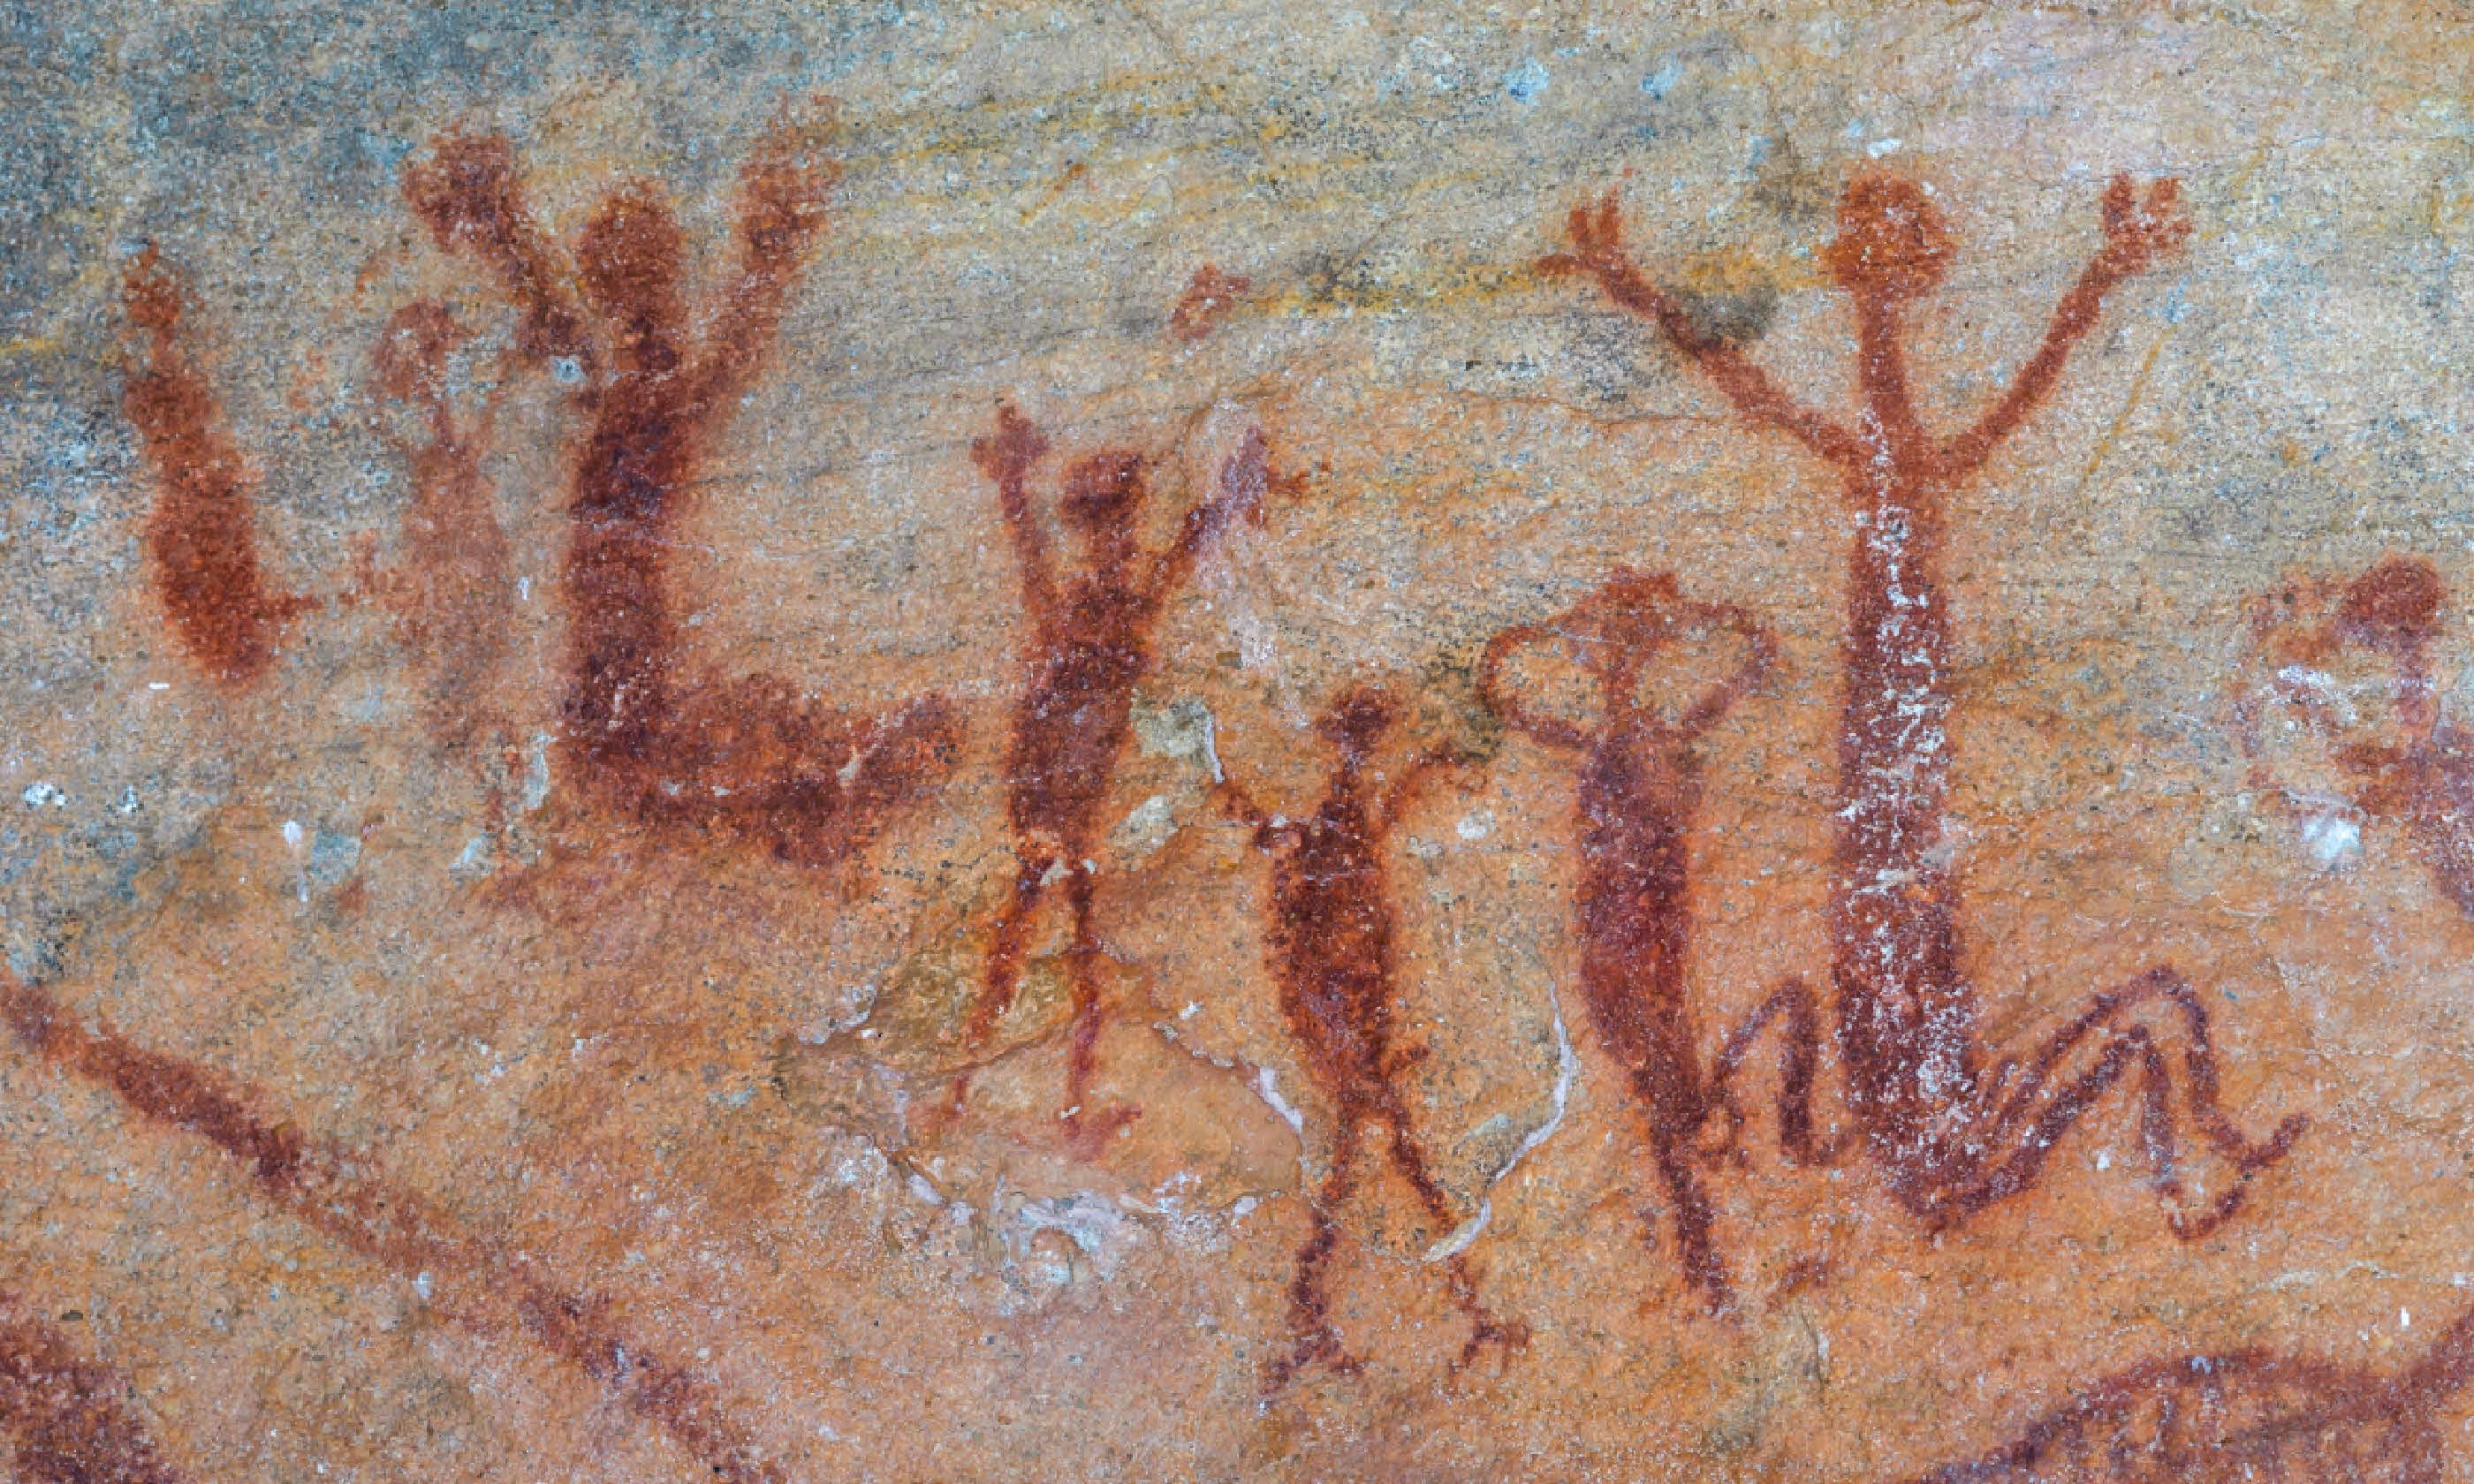 Rock paintings at Serra da Capivara National Park (Shutterstock)